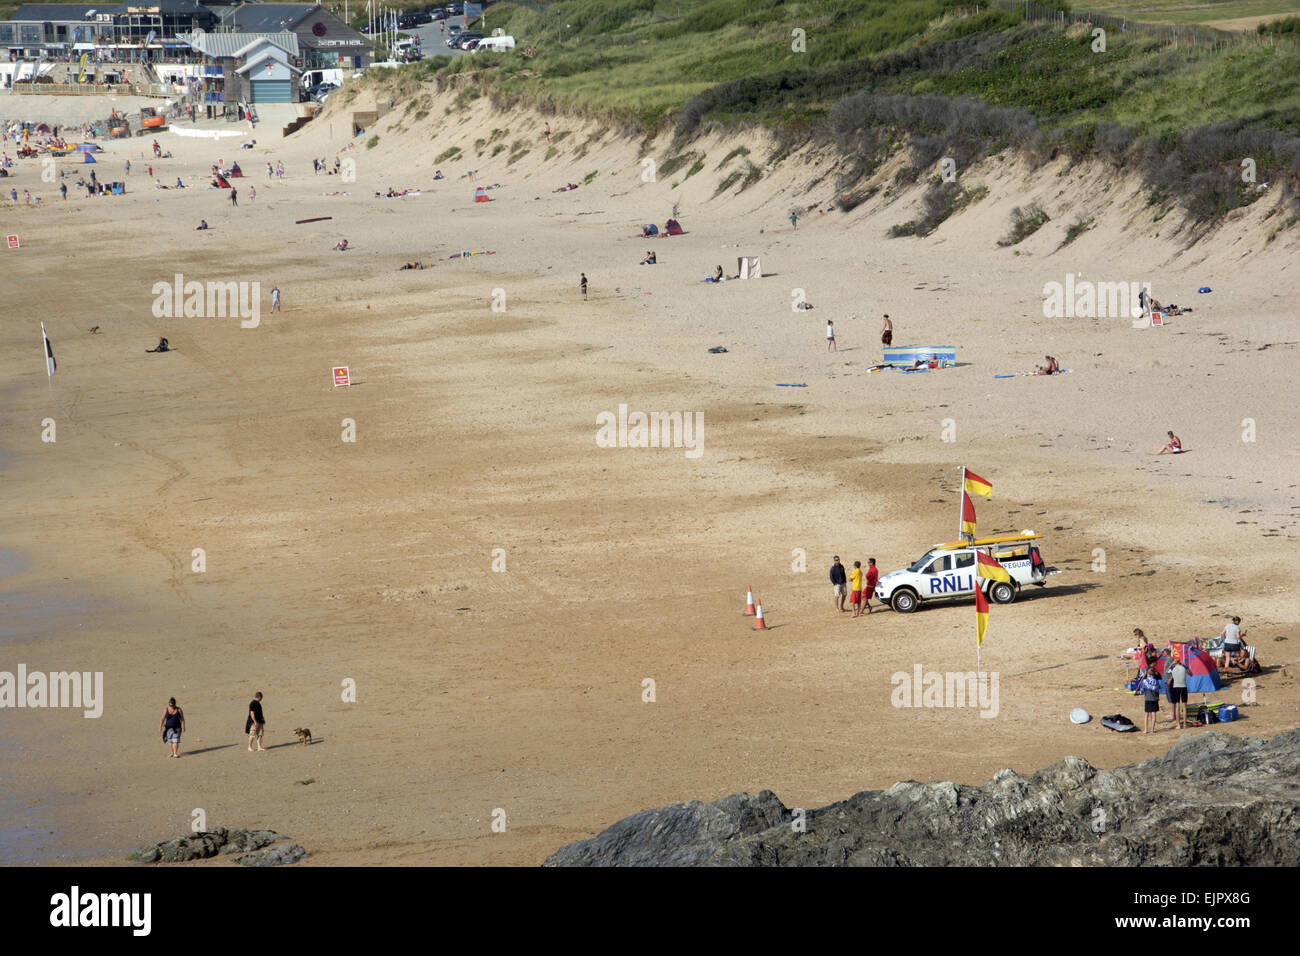 View of sandy beach with RNLI Lifeguards on standby, Fistral Beach, Fistral Bay, Newquay, Cornwall, England, July Stock Photo